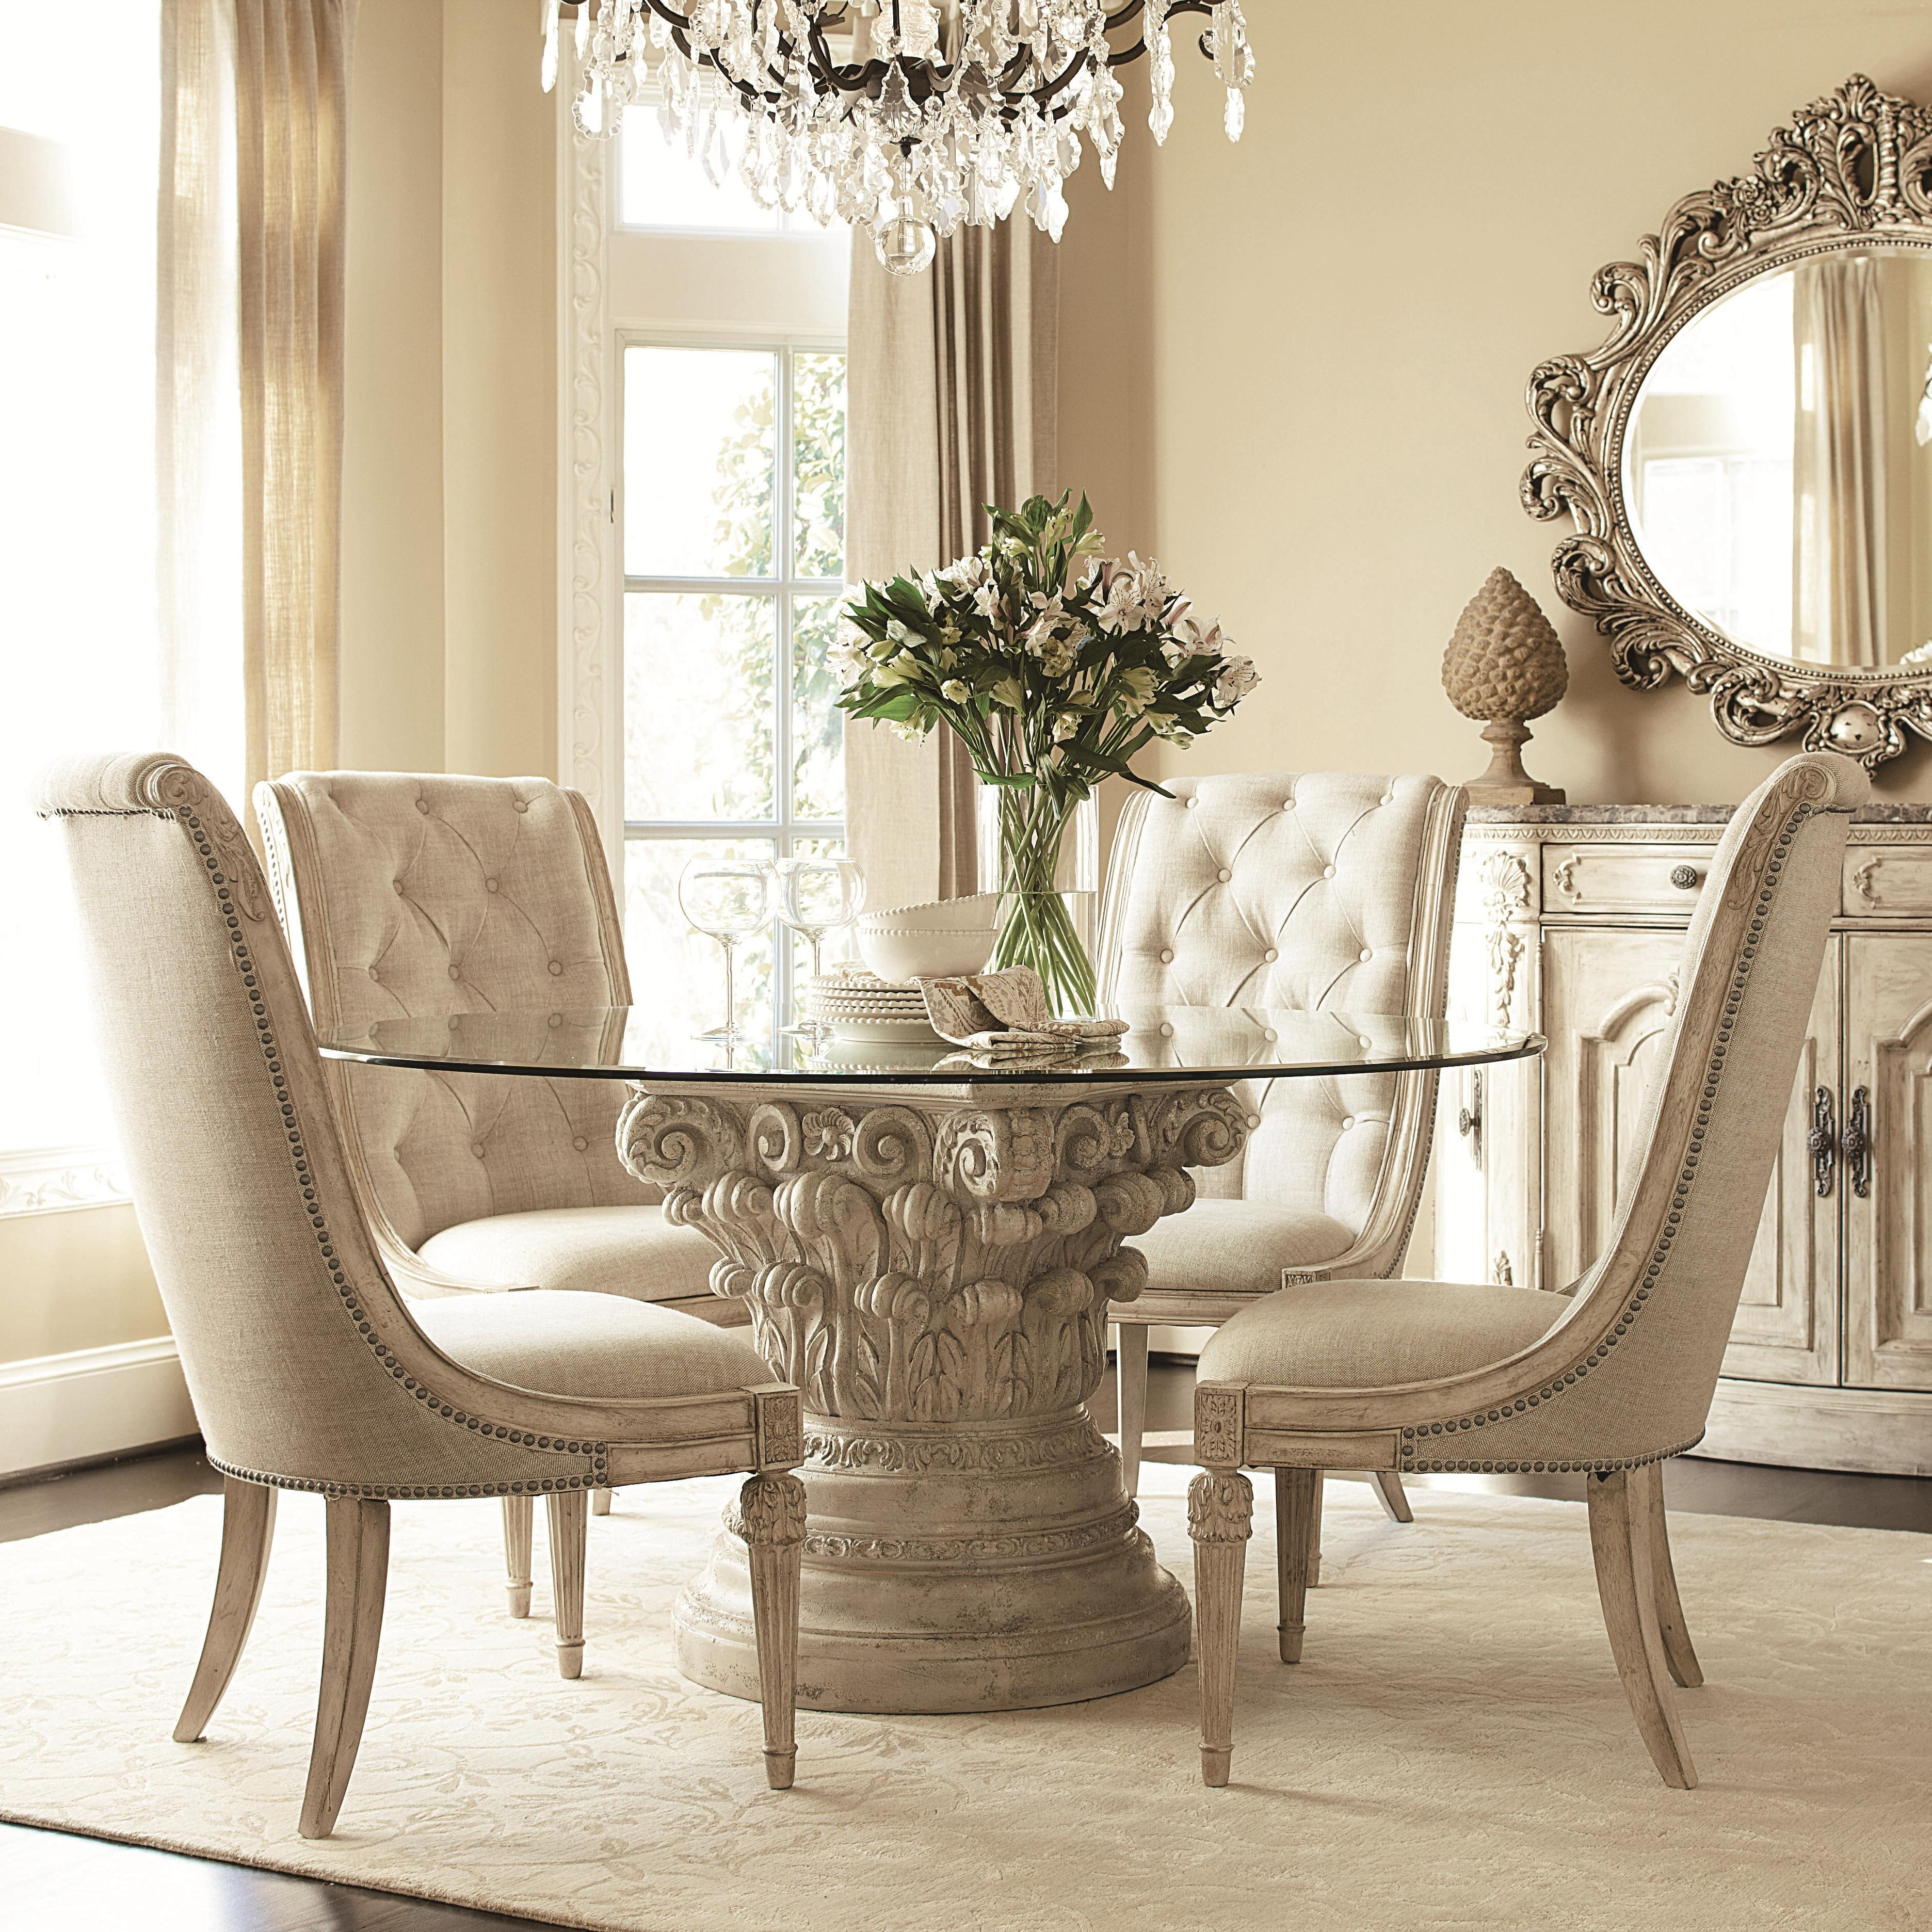 Most Recently Released American Drew Jessica Mcclintock Home – The Boutique Collection 5 Intended For Caira Black 7 Piece Dining Sets With Upholstered Side Chairs (View 14 of 25)